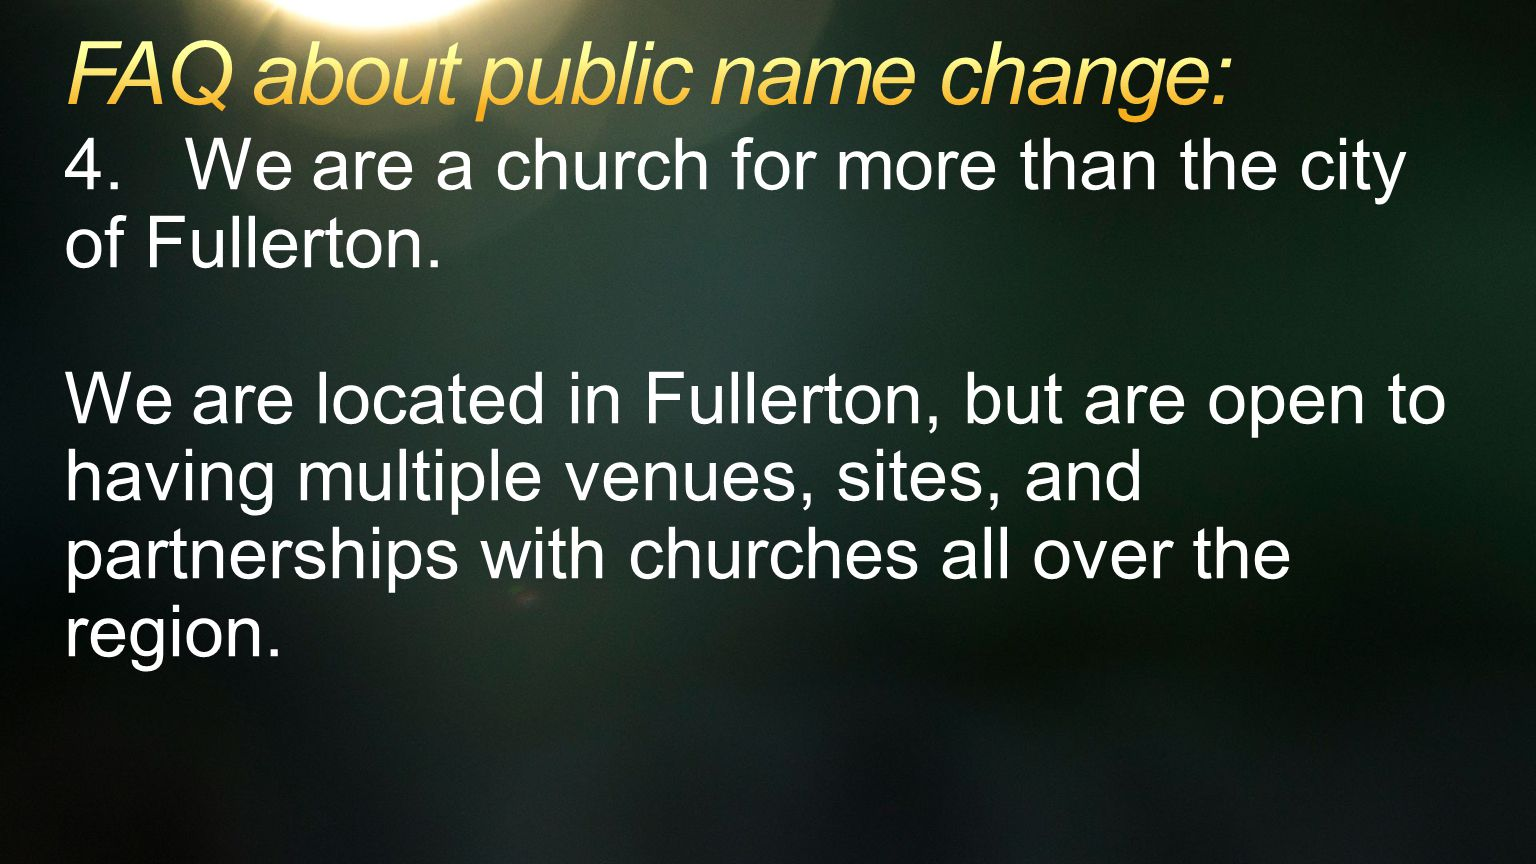 4. We are a church for more than the city of Fullerton.